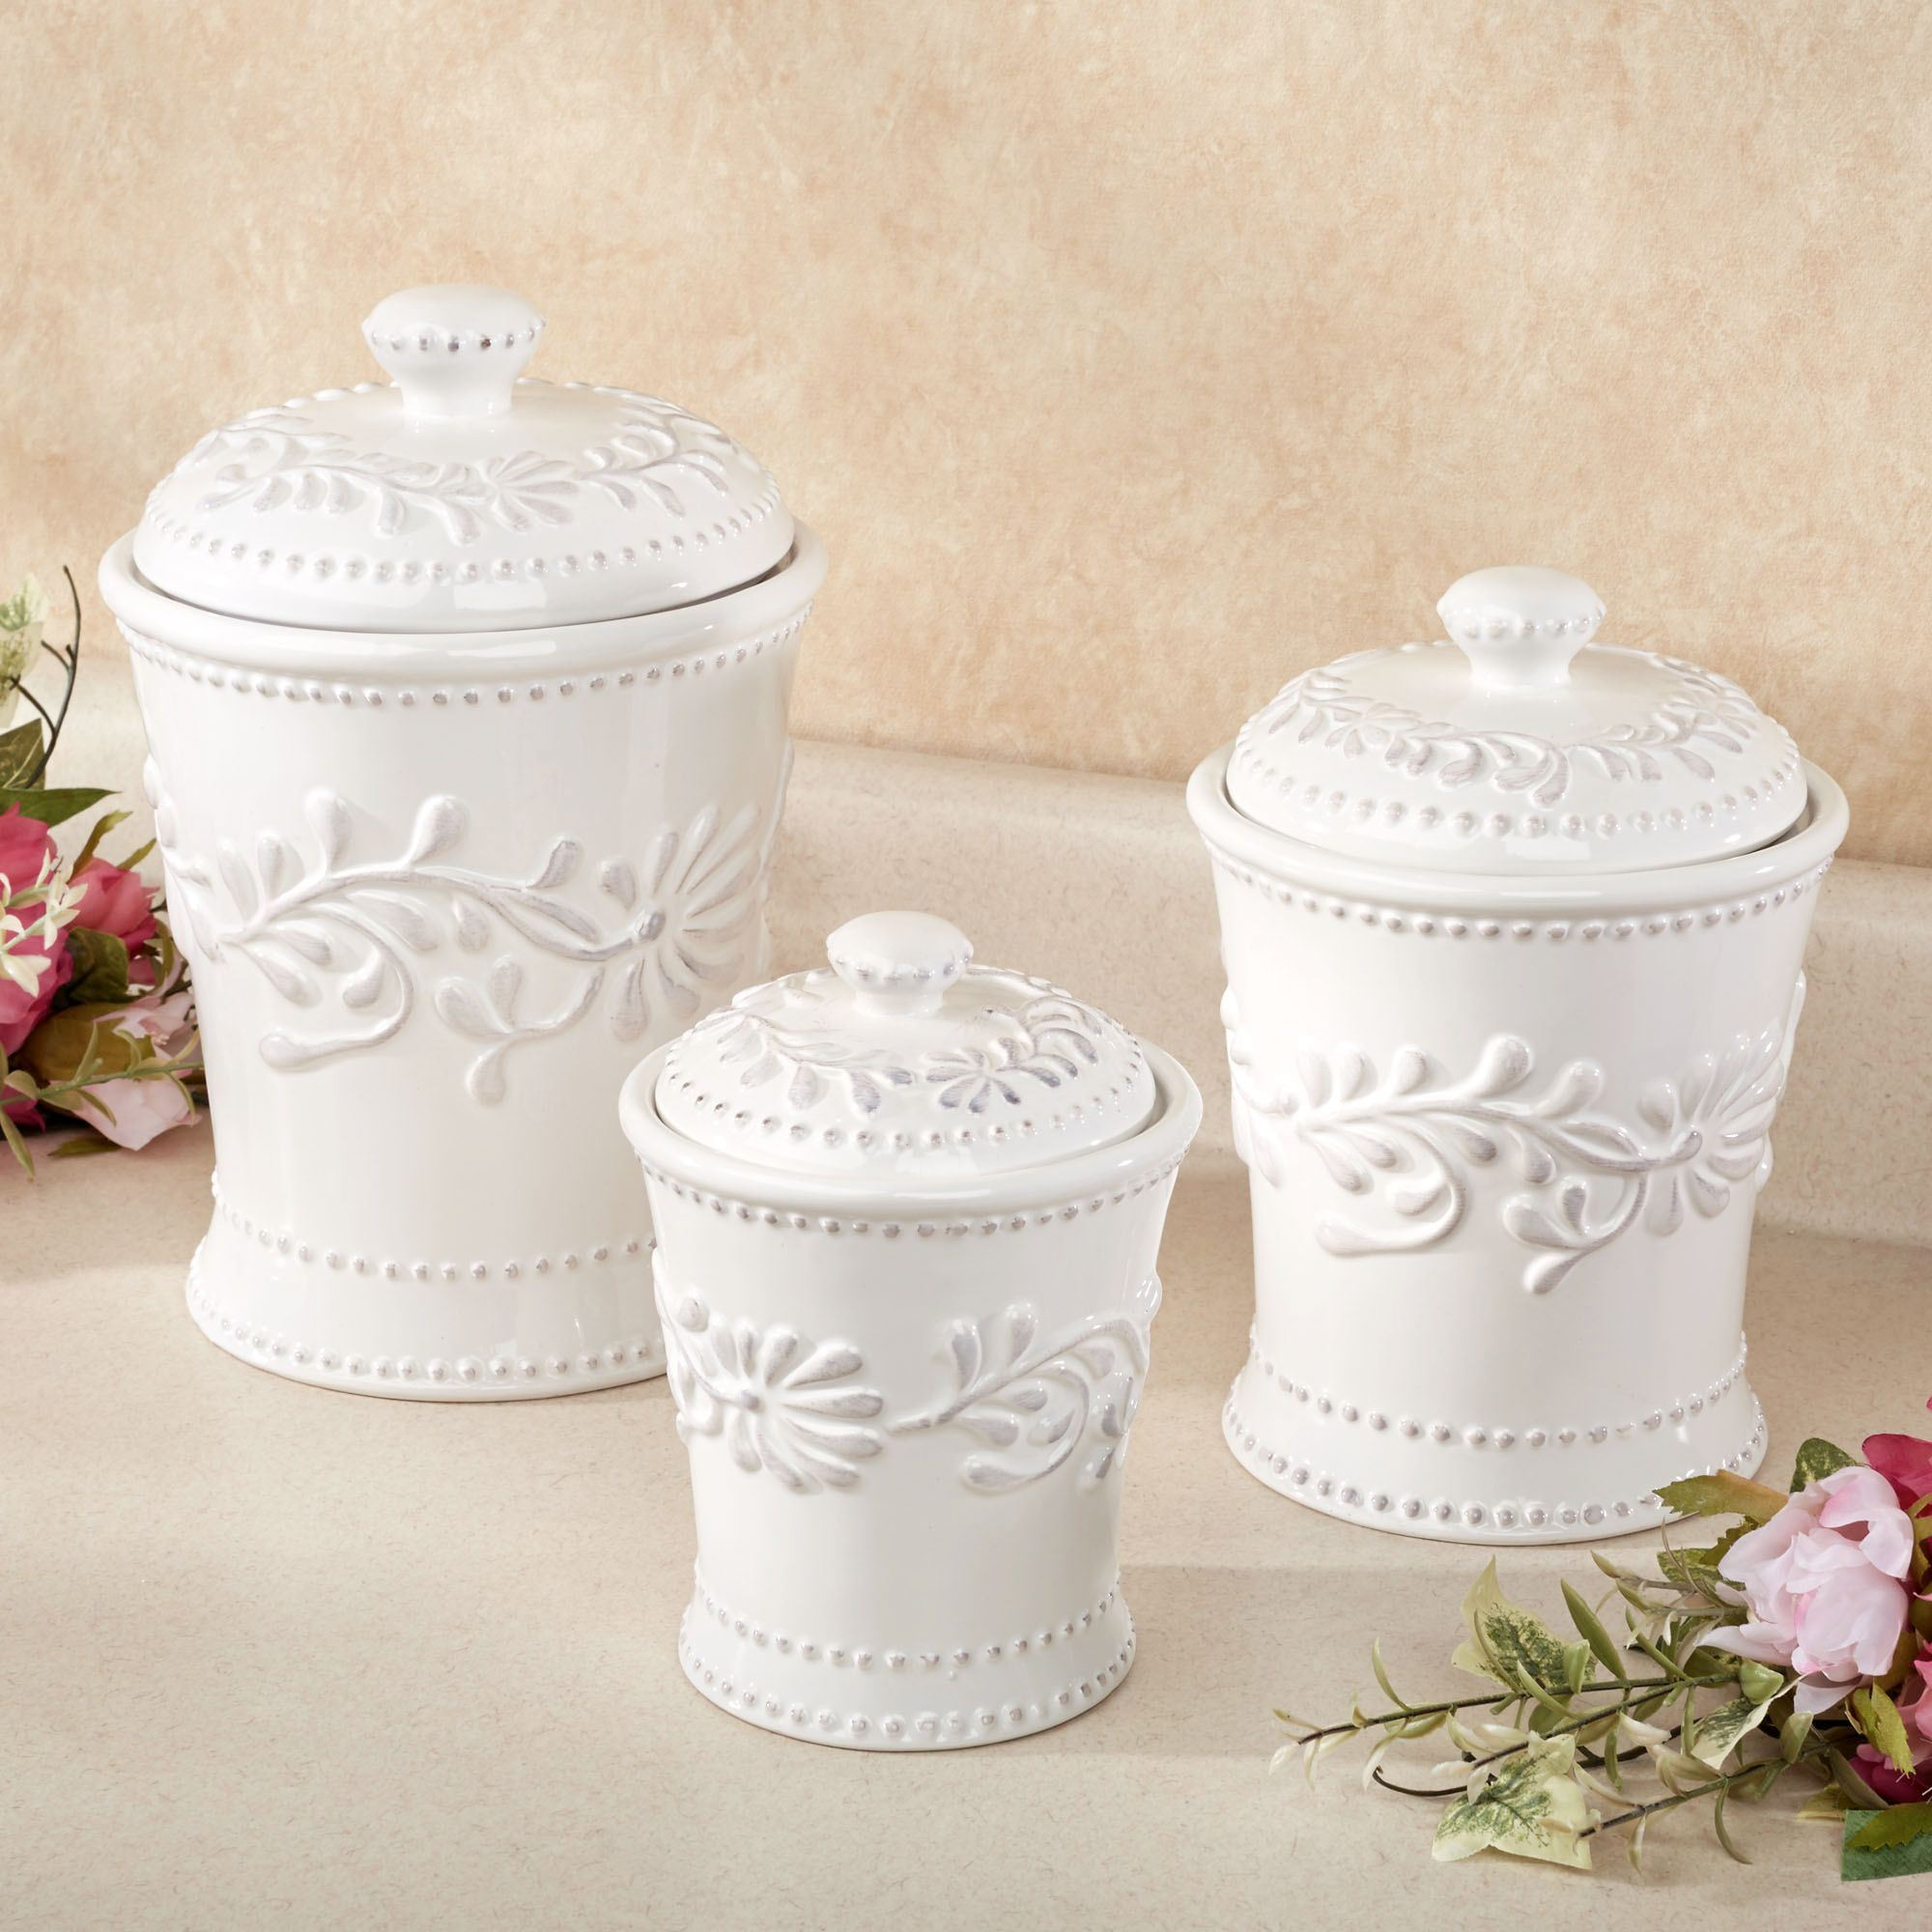 Beau Anca Leaf Kitchen Canister Set White Set Of Three. Touch To Zoom